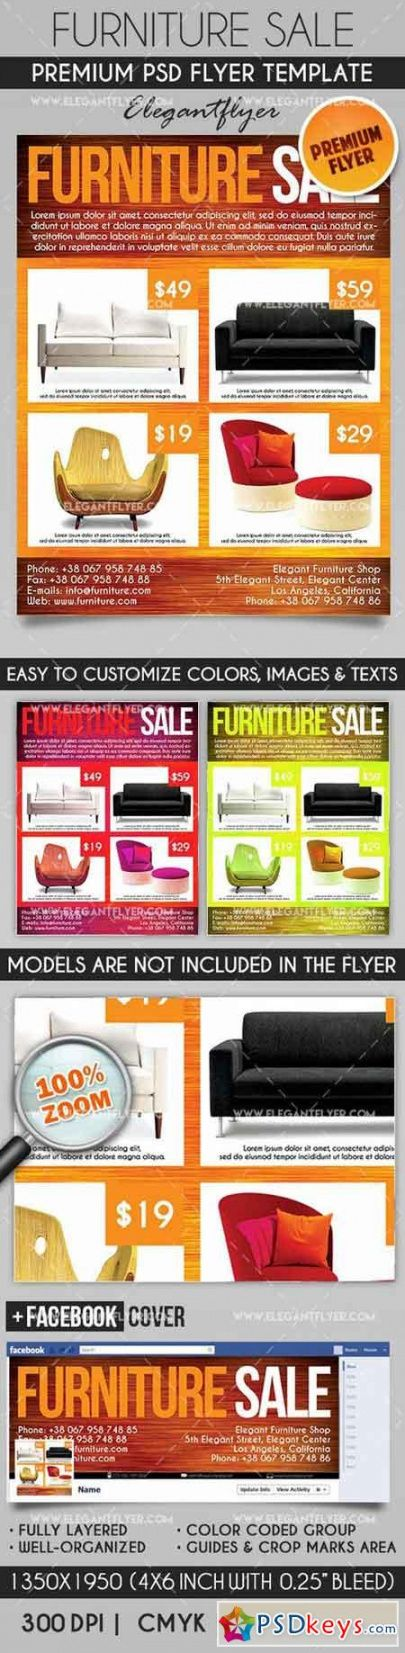 free articles for 24102016 » free download photoshop vector furniture sale flyer template and sample